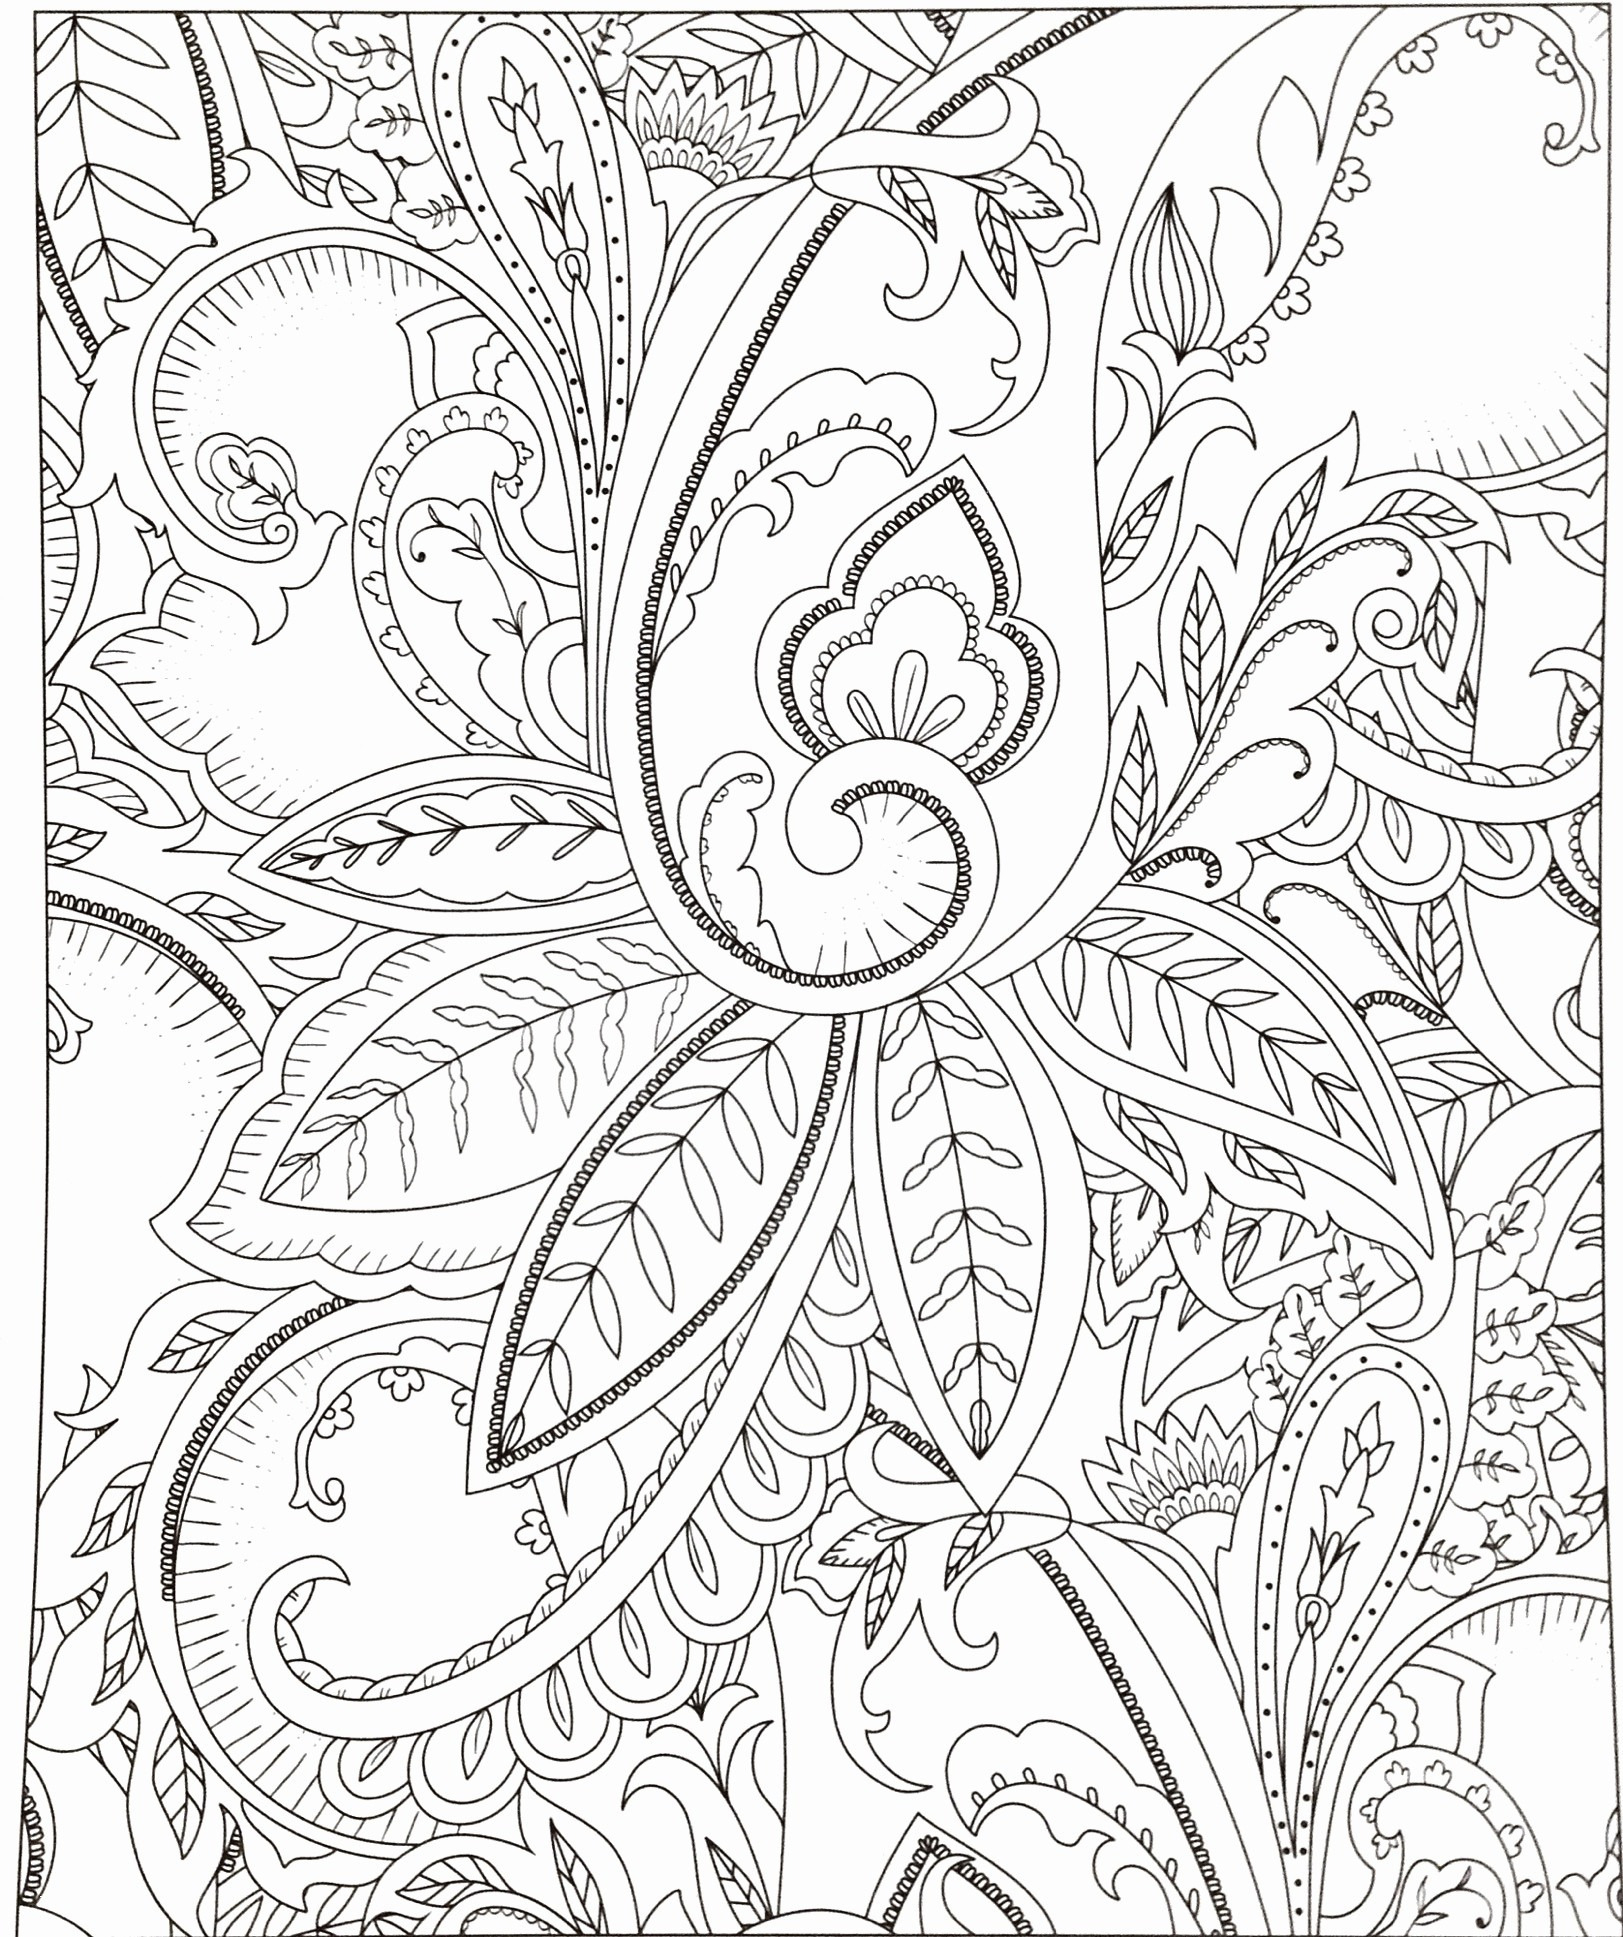 coloring pages games Download-Ausmalbilder Mario Neu Mario Coloring Games Awesome Home Coloring Pages Best Color Sheet 0d 18-o